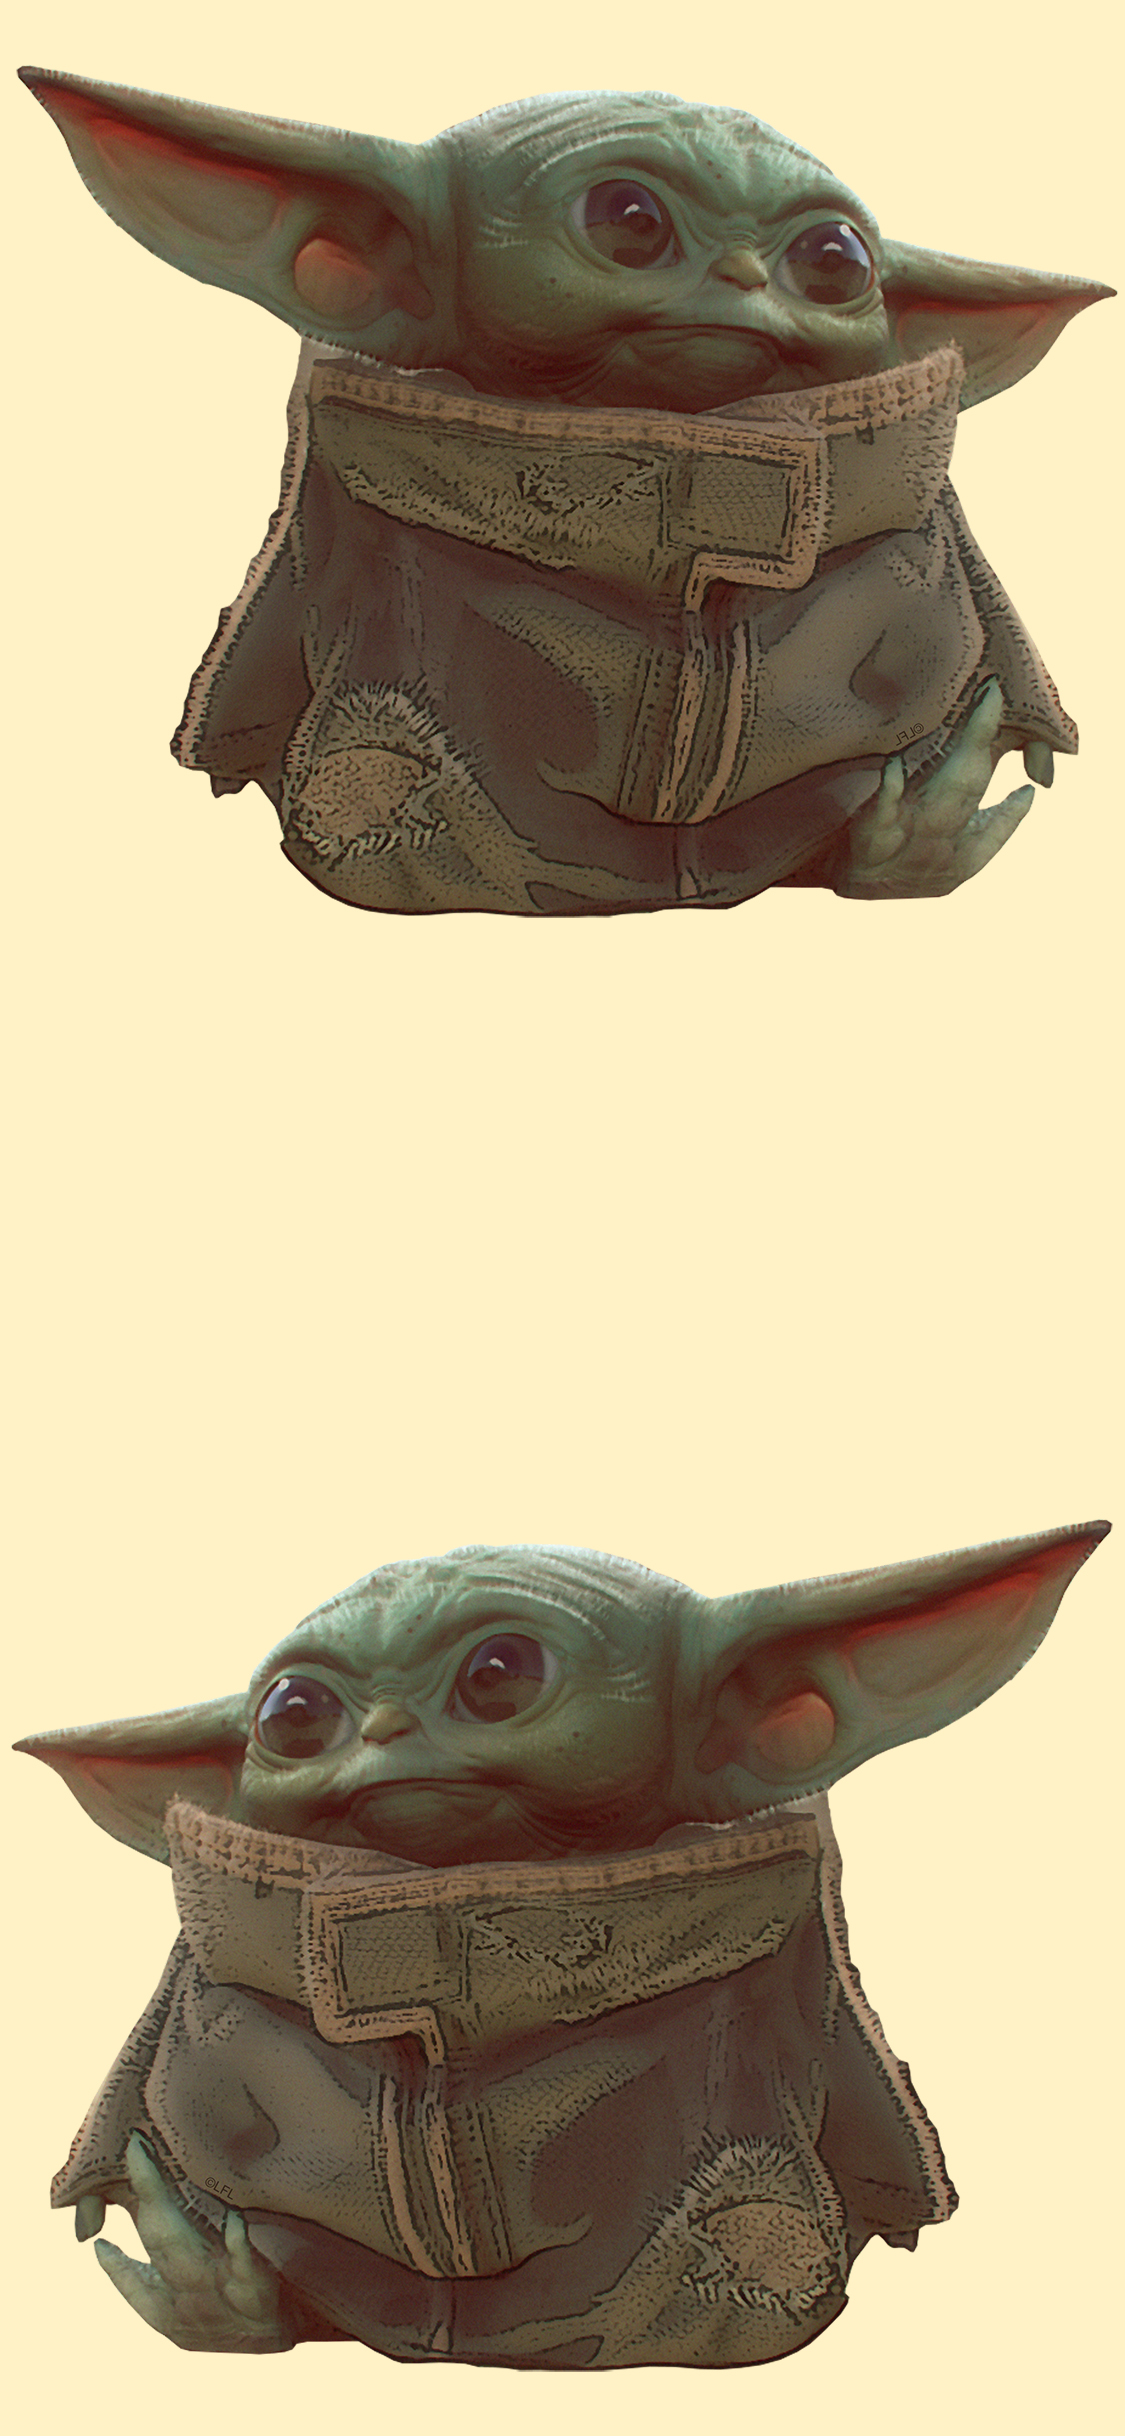 Baby Yoda iphone X wallpaper collection , YouLoveIt.com